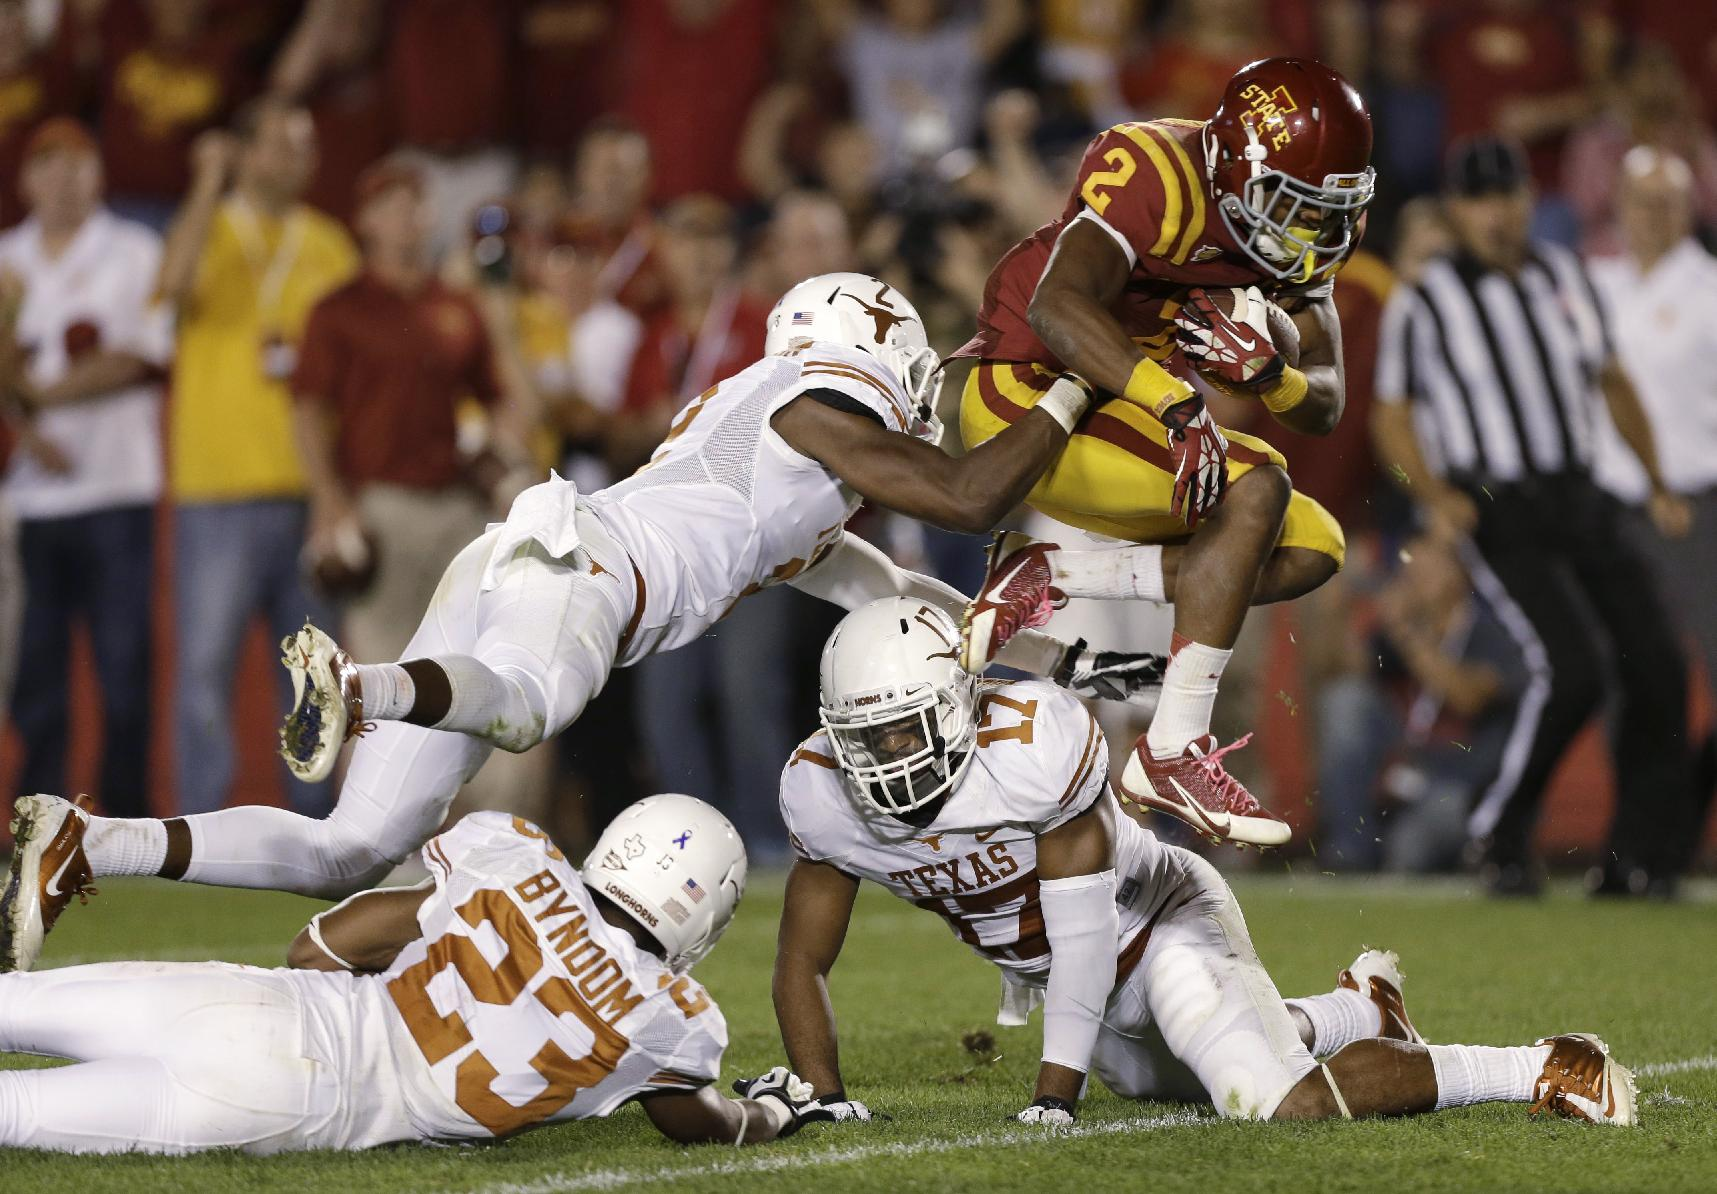 Iowa State running back Aaron Wimberly, right, leaps past Texas defenders Carrington Byndom (23), Mykkele Thompson and Adrian Phillips (17) during a 20-yard touchdown run in the second half of an NCAA college football game, Thursday, Oct. 3, 2013, in Ames, Iowa. Texas won 31-30